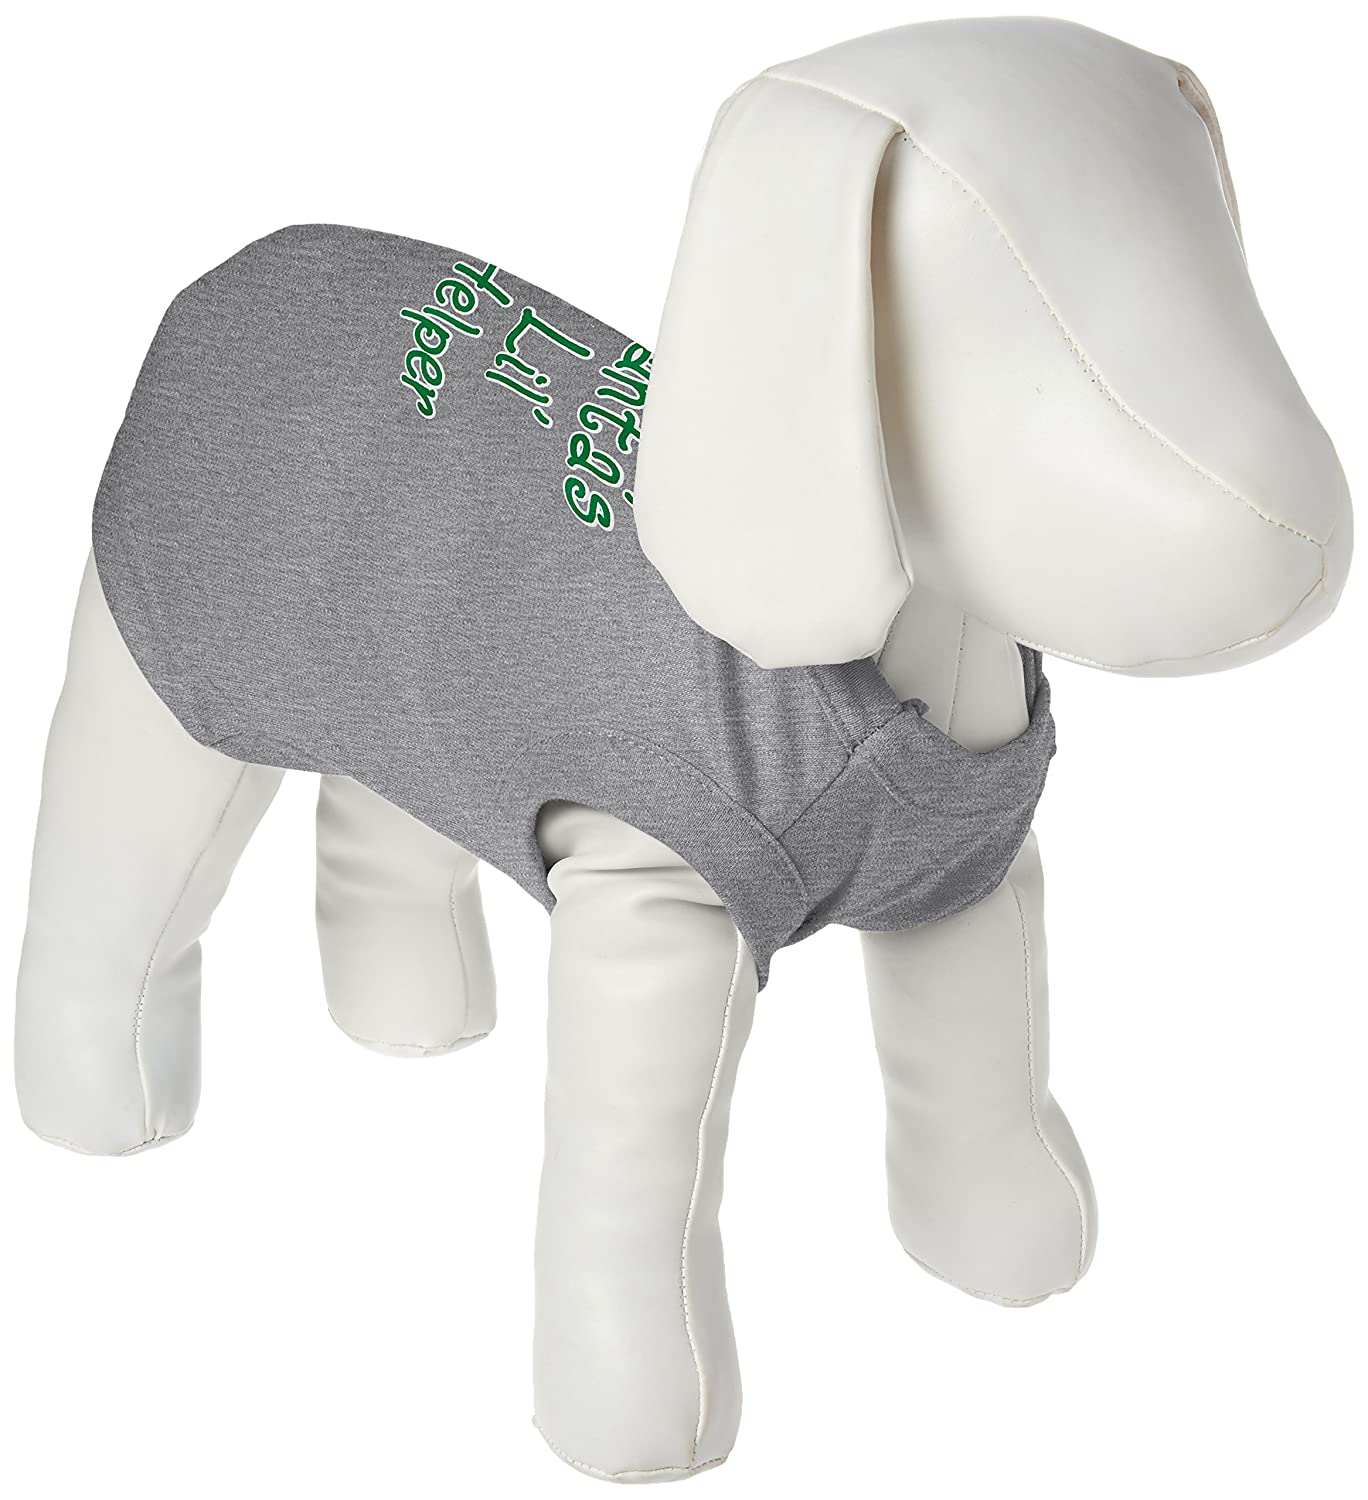 Mirage Pet Products 10-Inch Santa's Lil' Helper Screen Print Shirts for Pets, Small, Grey